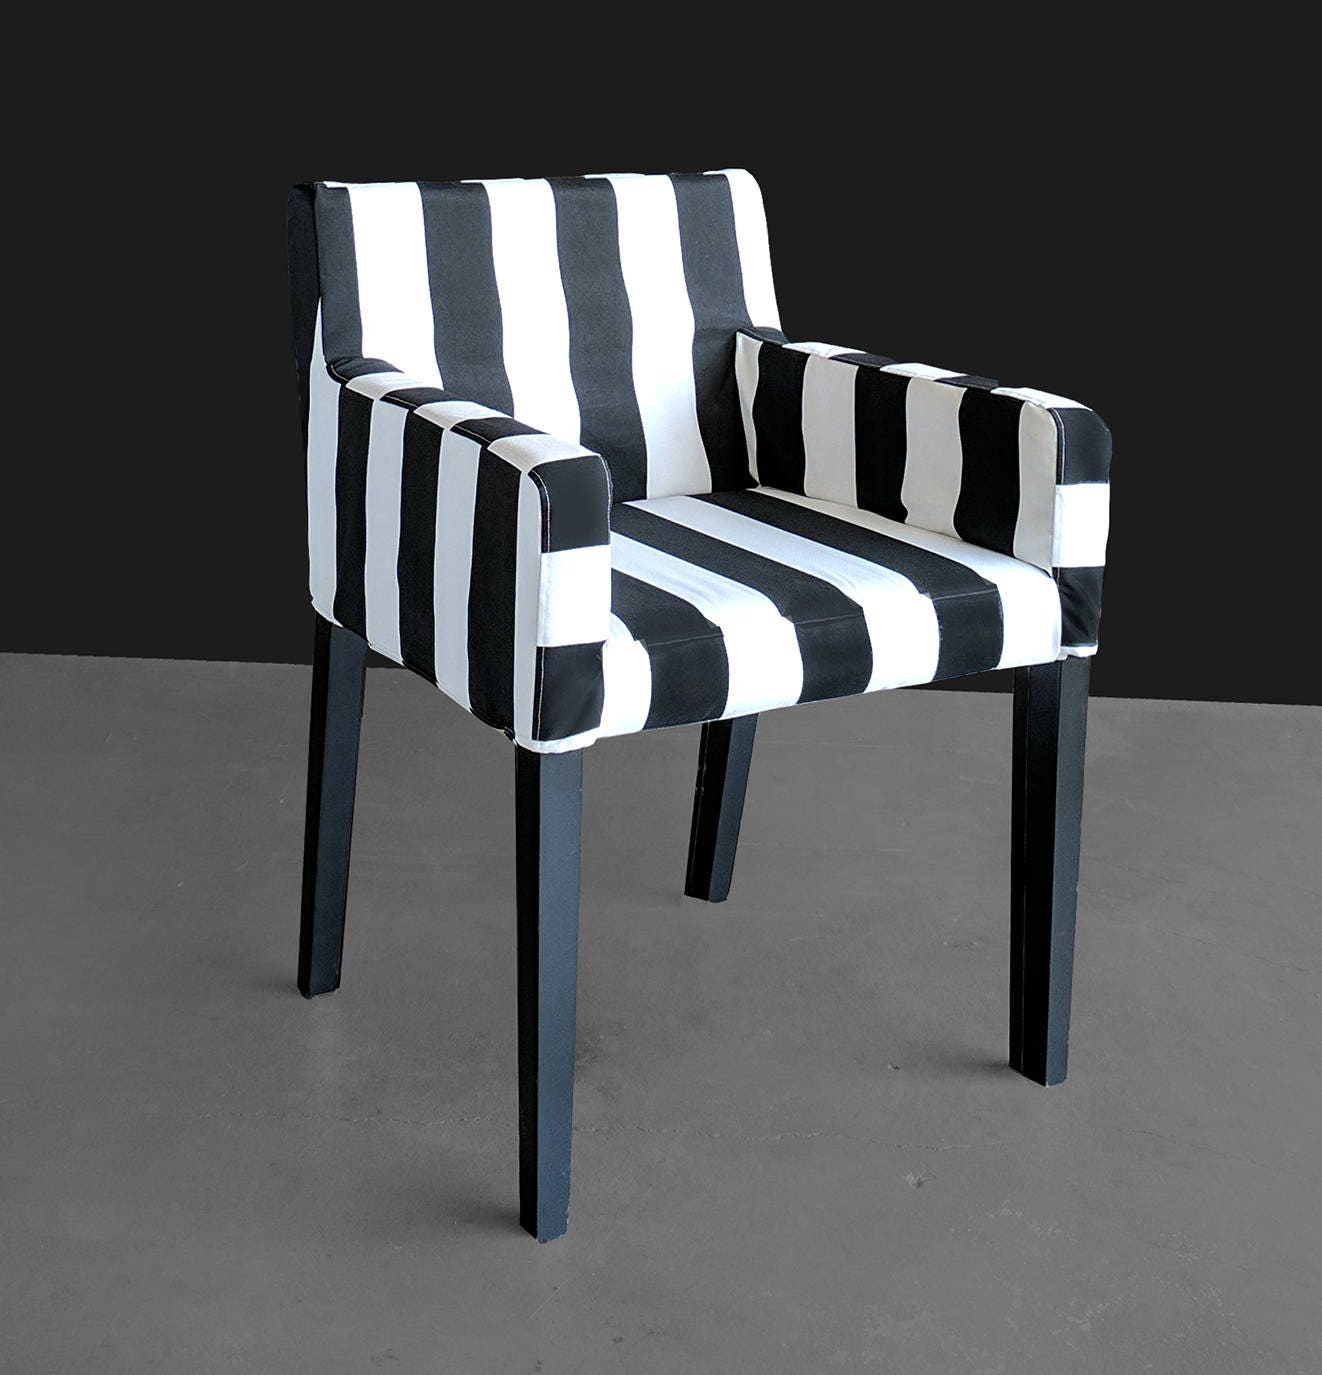 Miraculous Ikea Nils Chair Slip Cover Cabana Stripe Black White Pabps2019 Chair Design Images Pabps2019Com